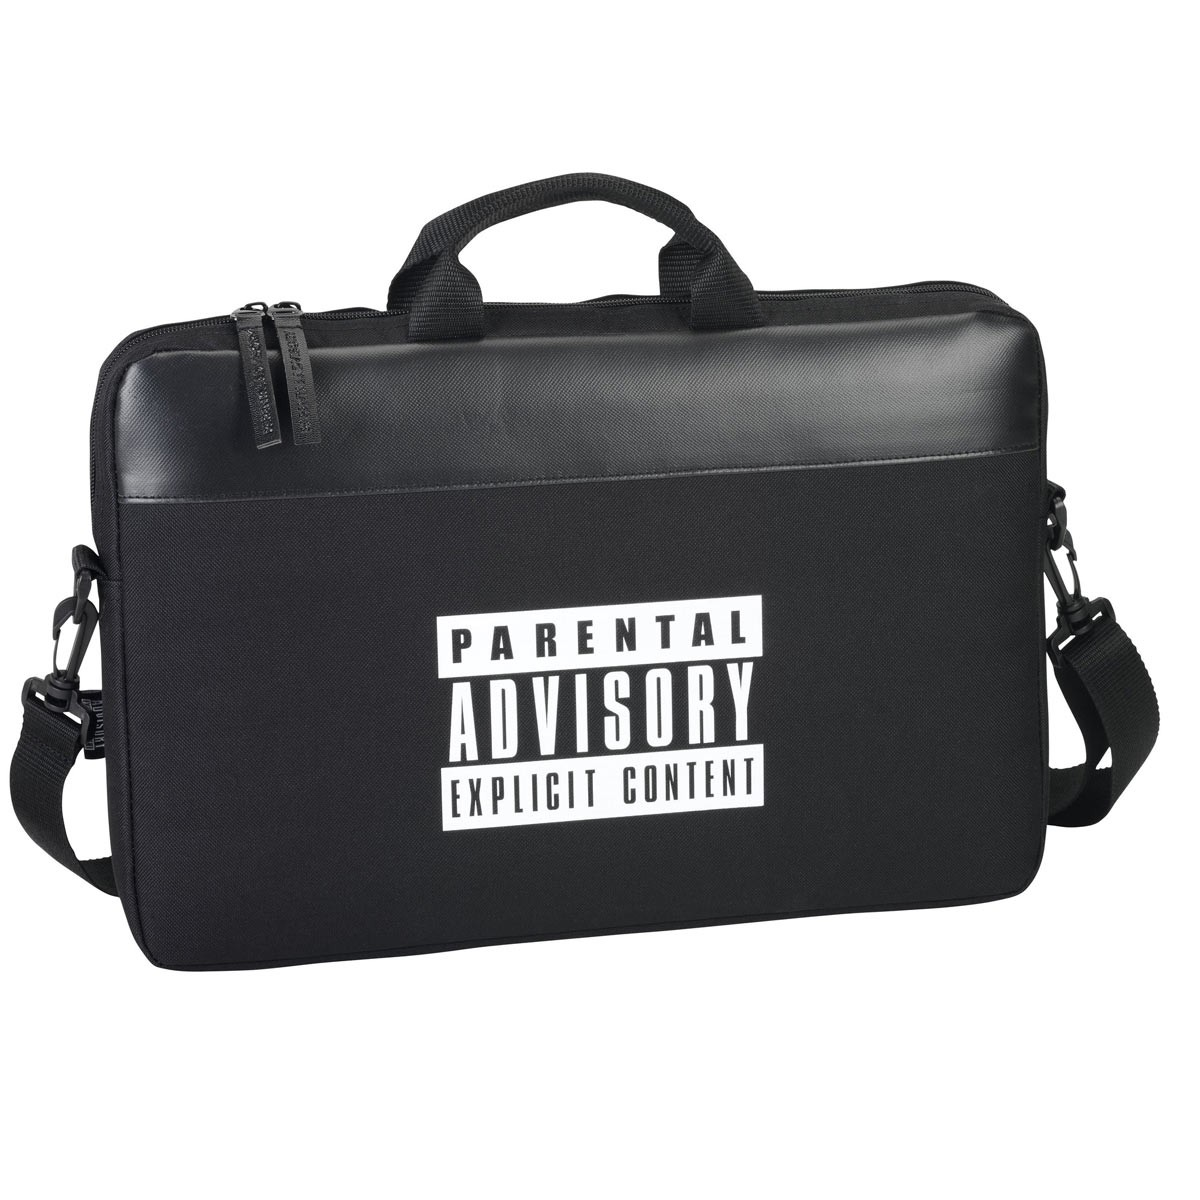 OFFICIAL Parental Advisory Messenger Laptop Bag 15.6'' Inch Devices